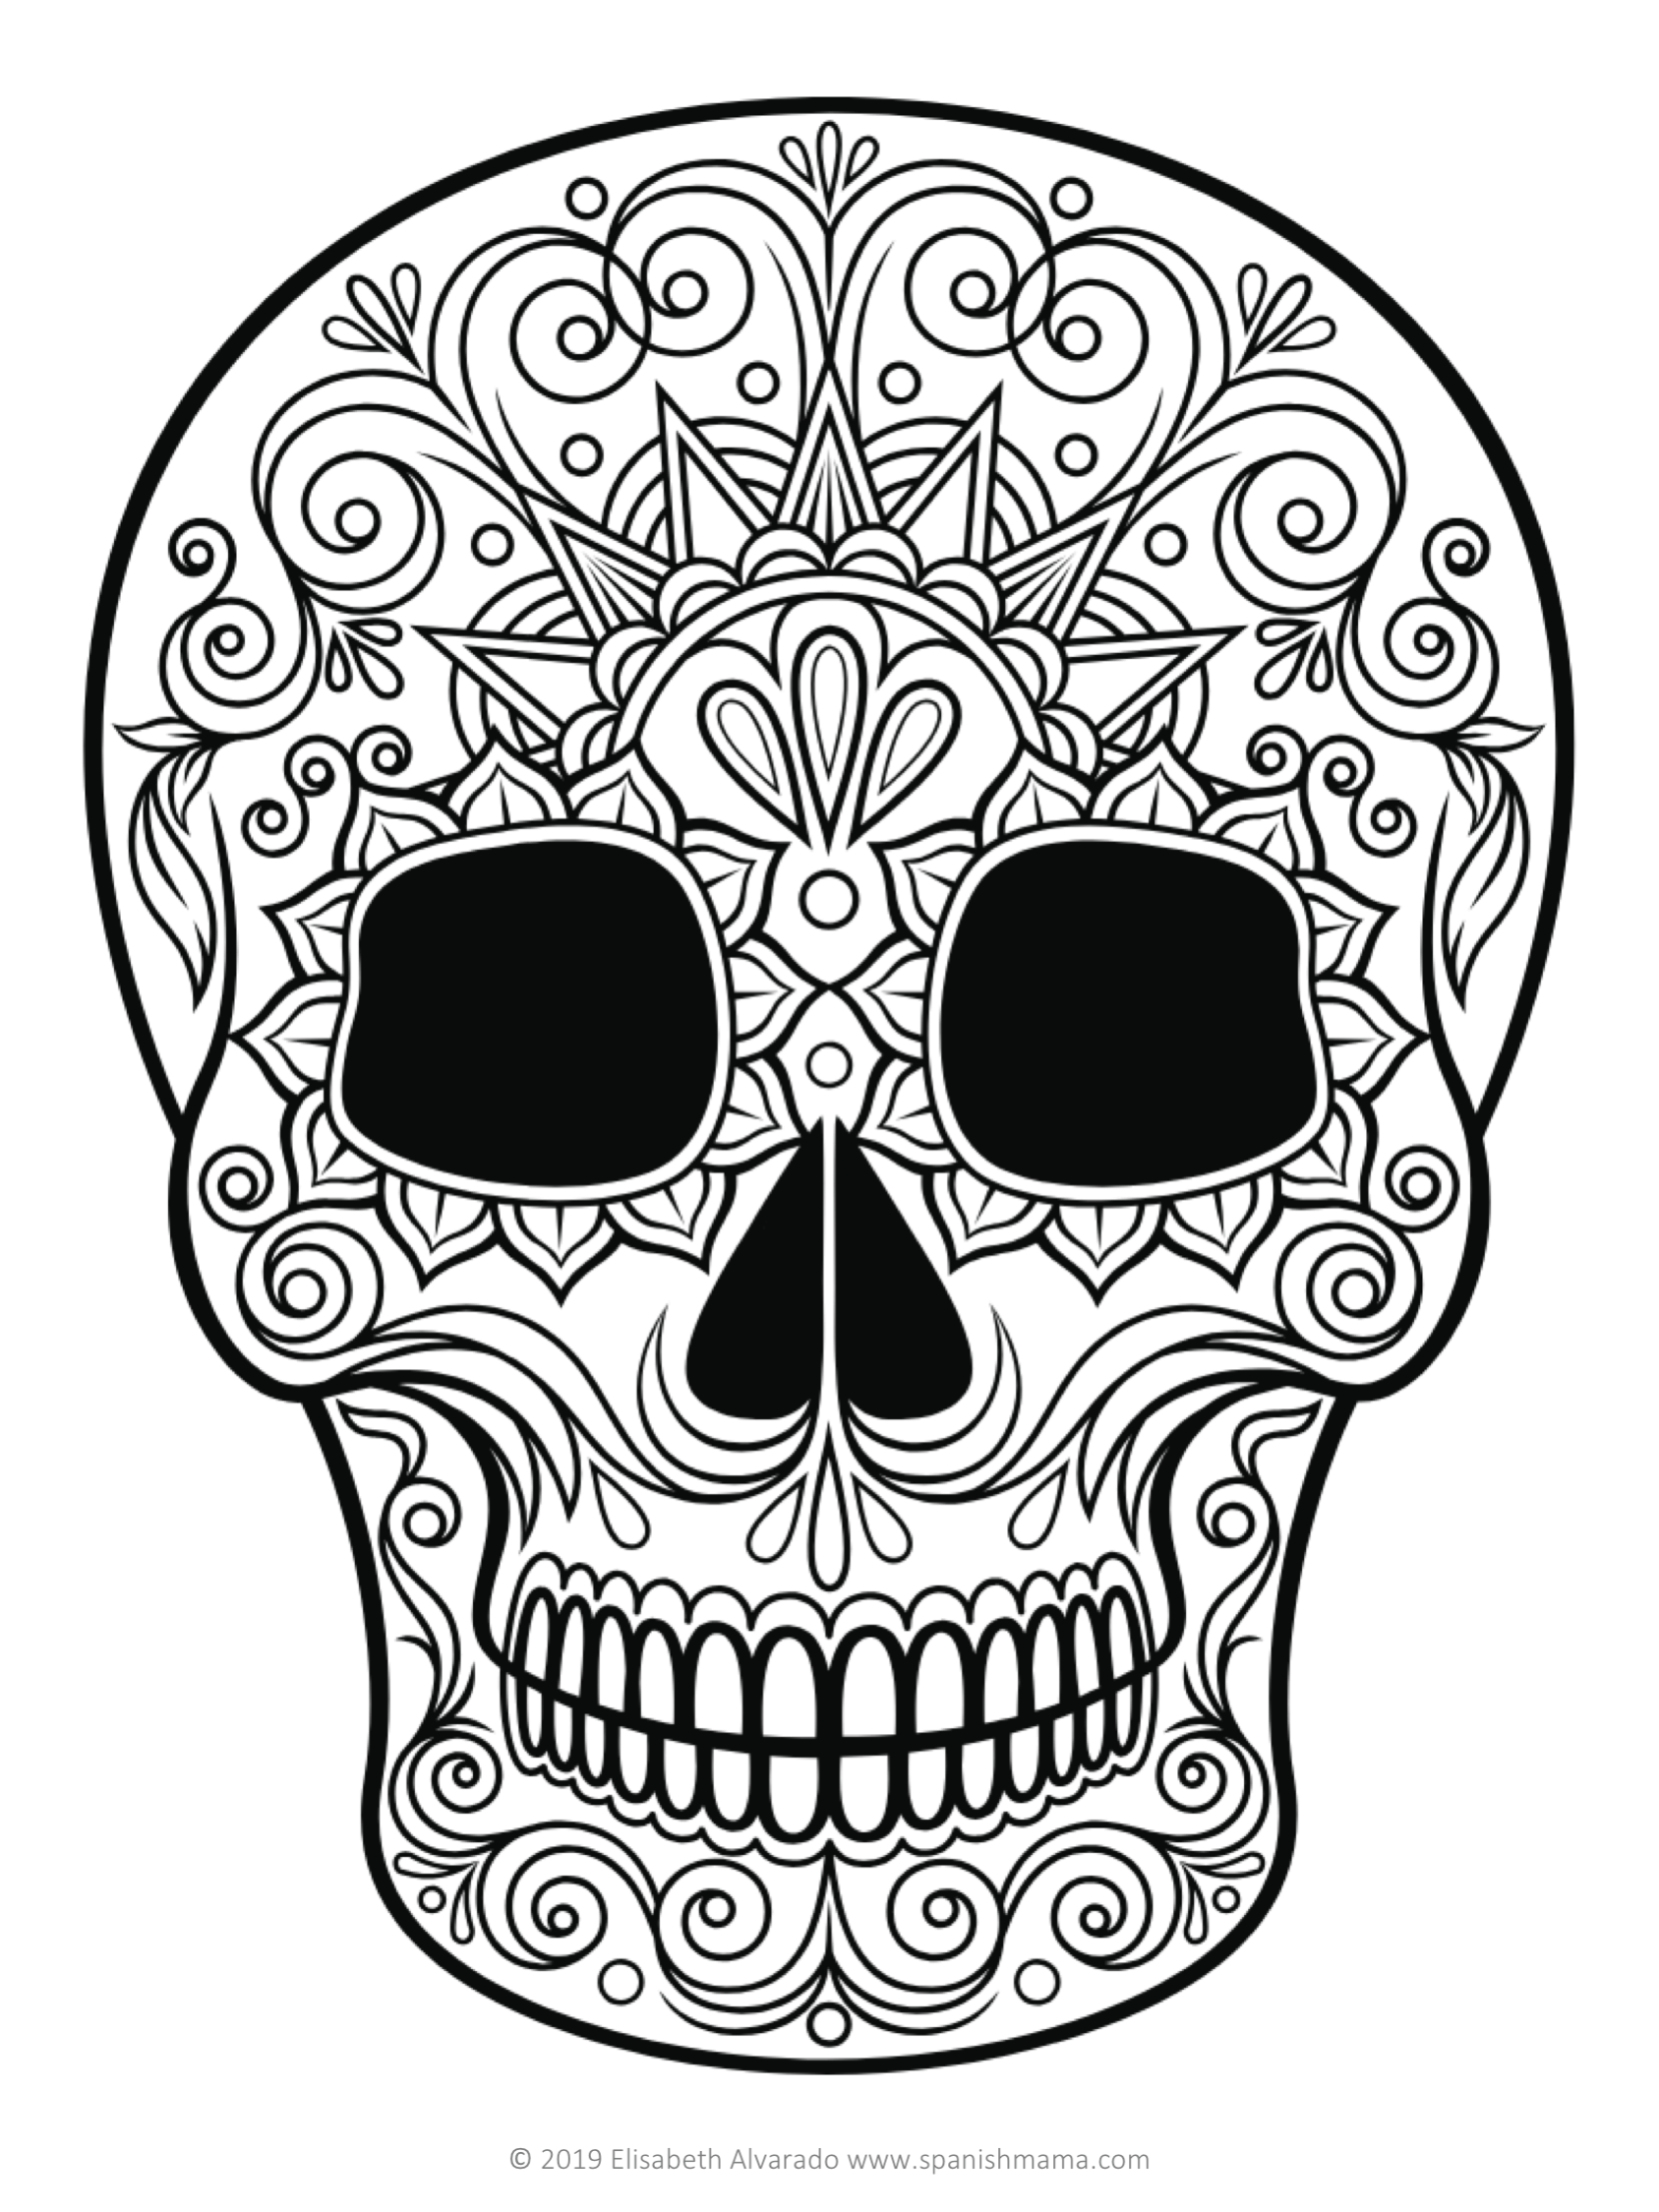 skulls to color free printable skull coloring pages for kids skulls to color 1 1